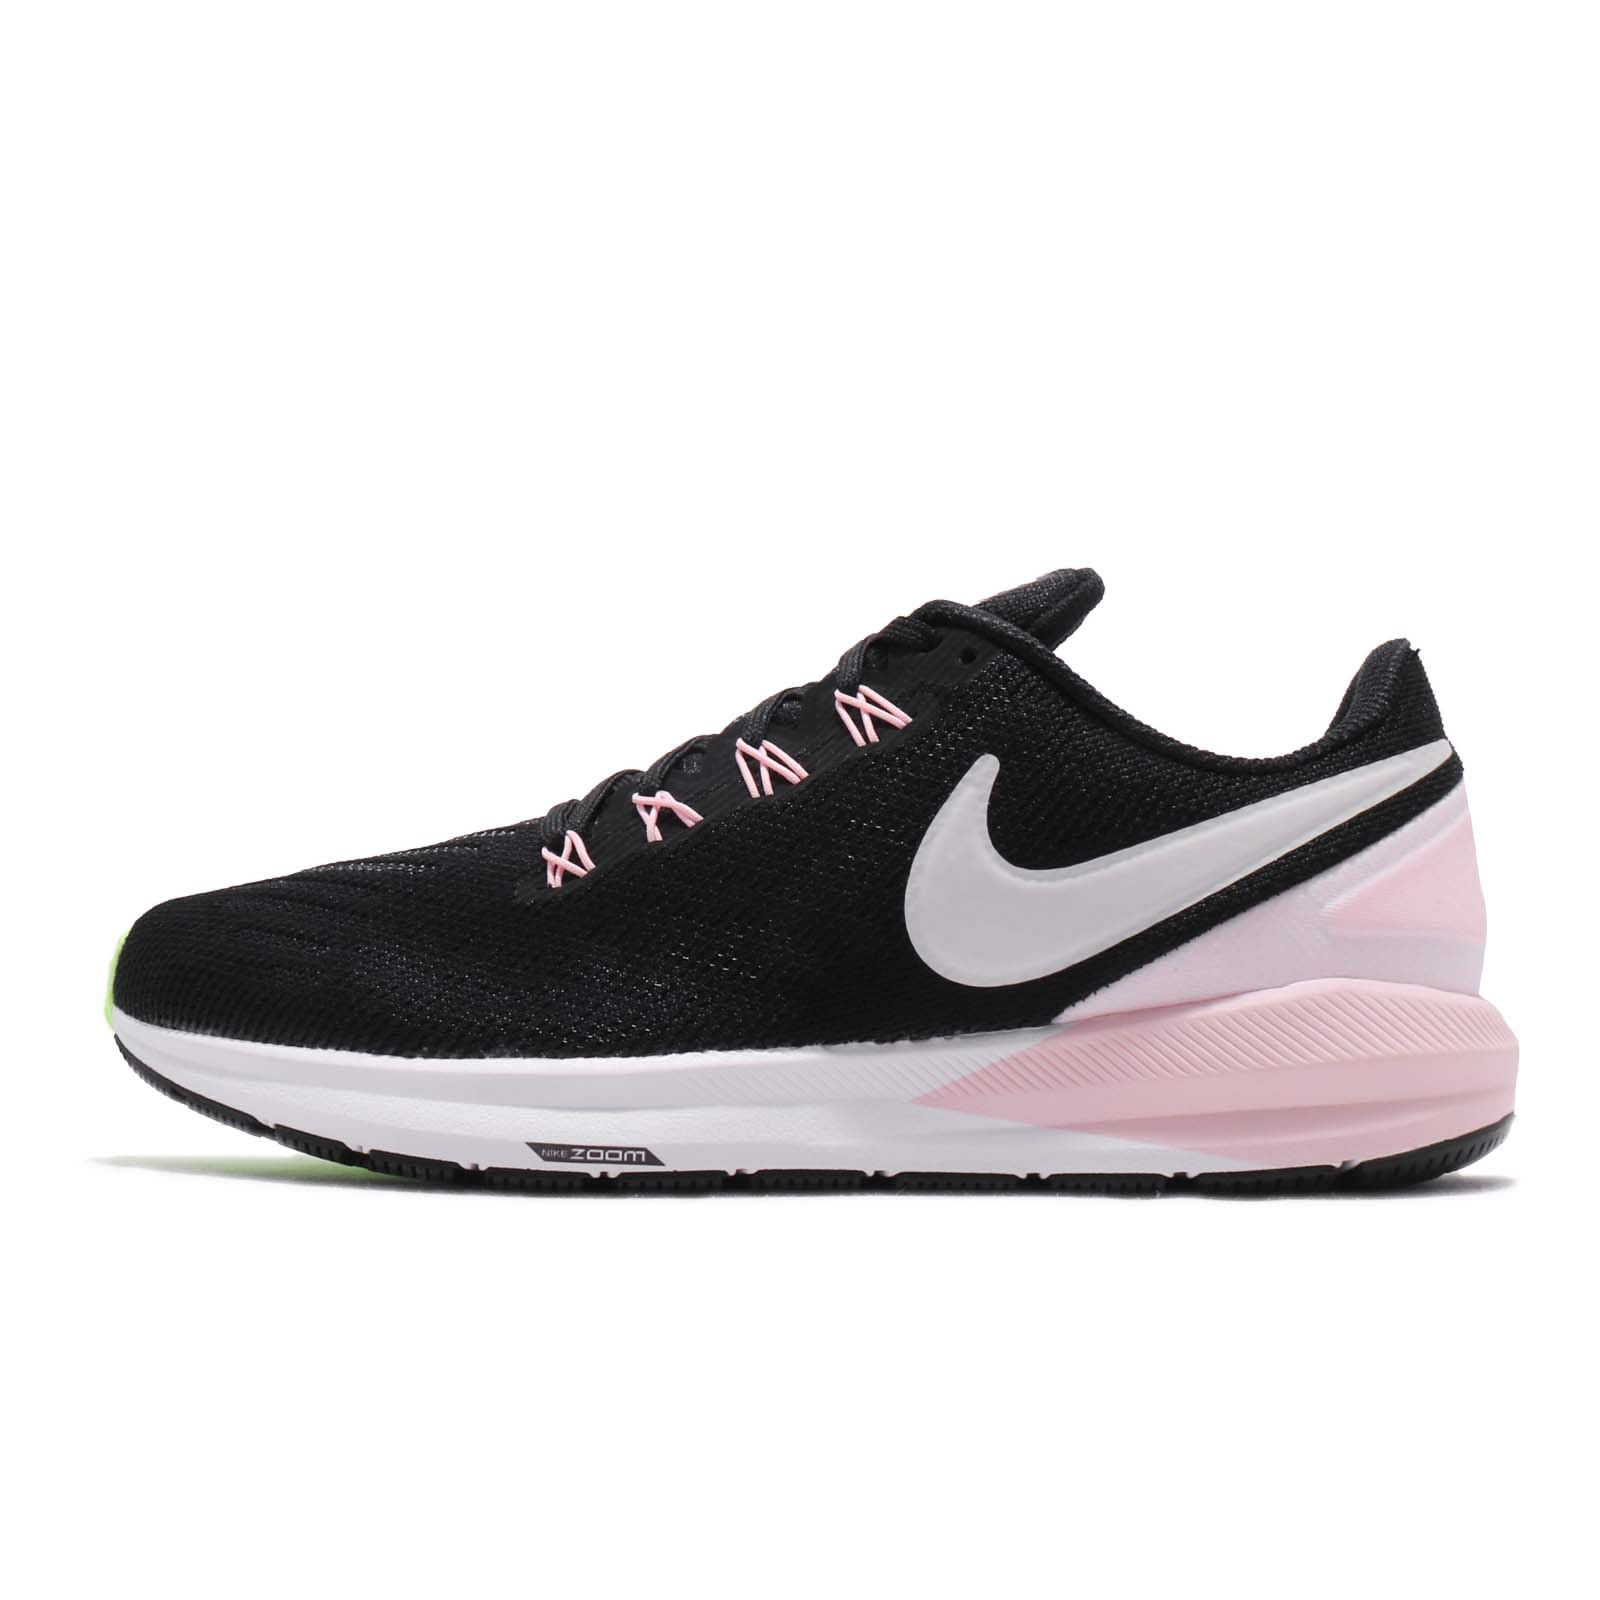 202f898c41a Nike Wmns Air Zoom Structure 22 Black Pink Foam Women Running Shoes  AA1640-004